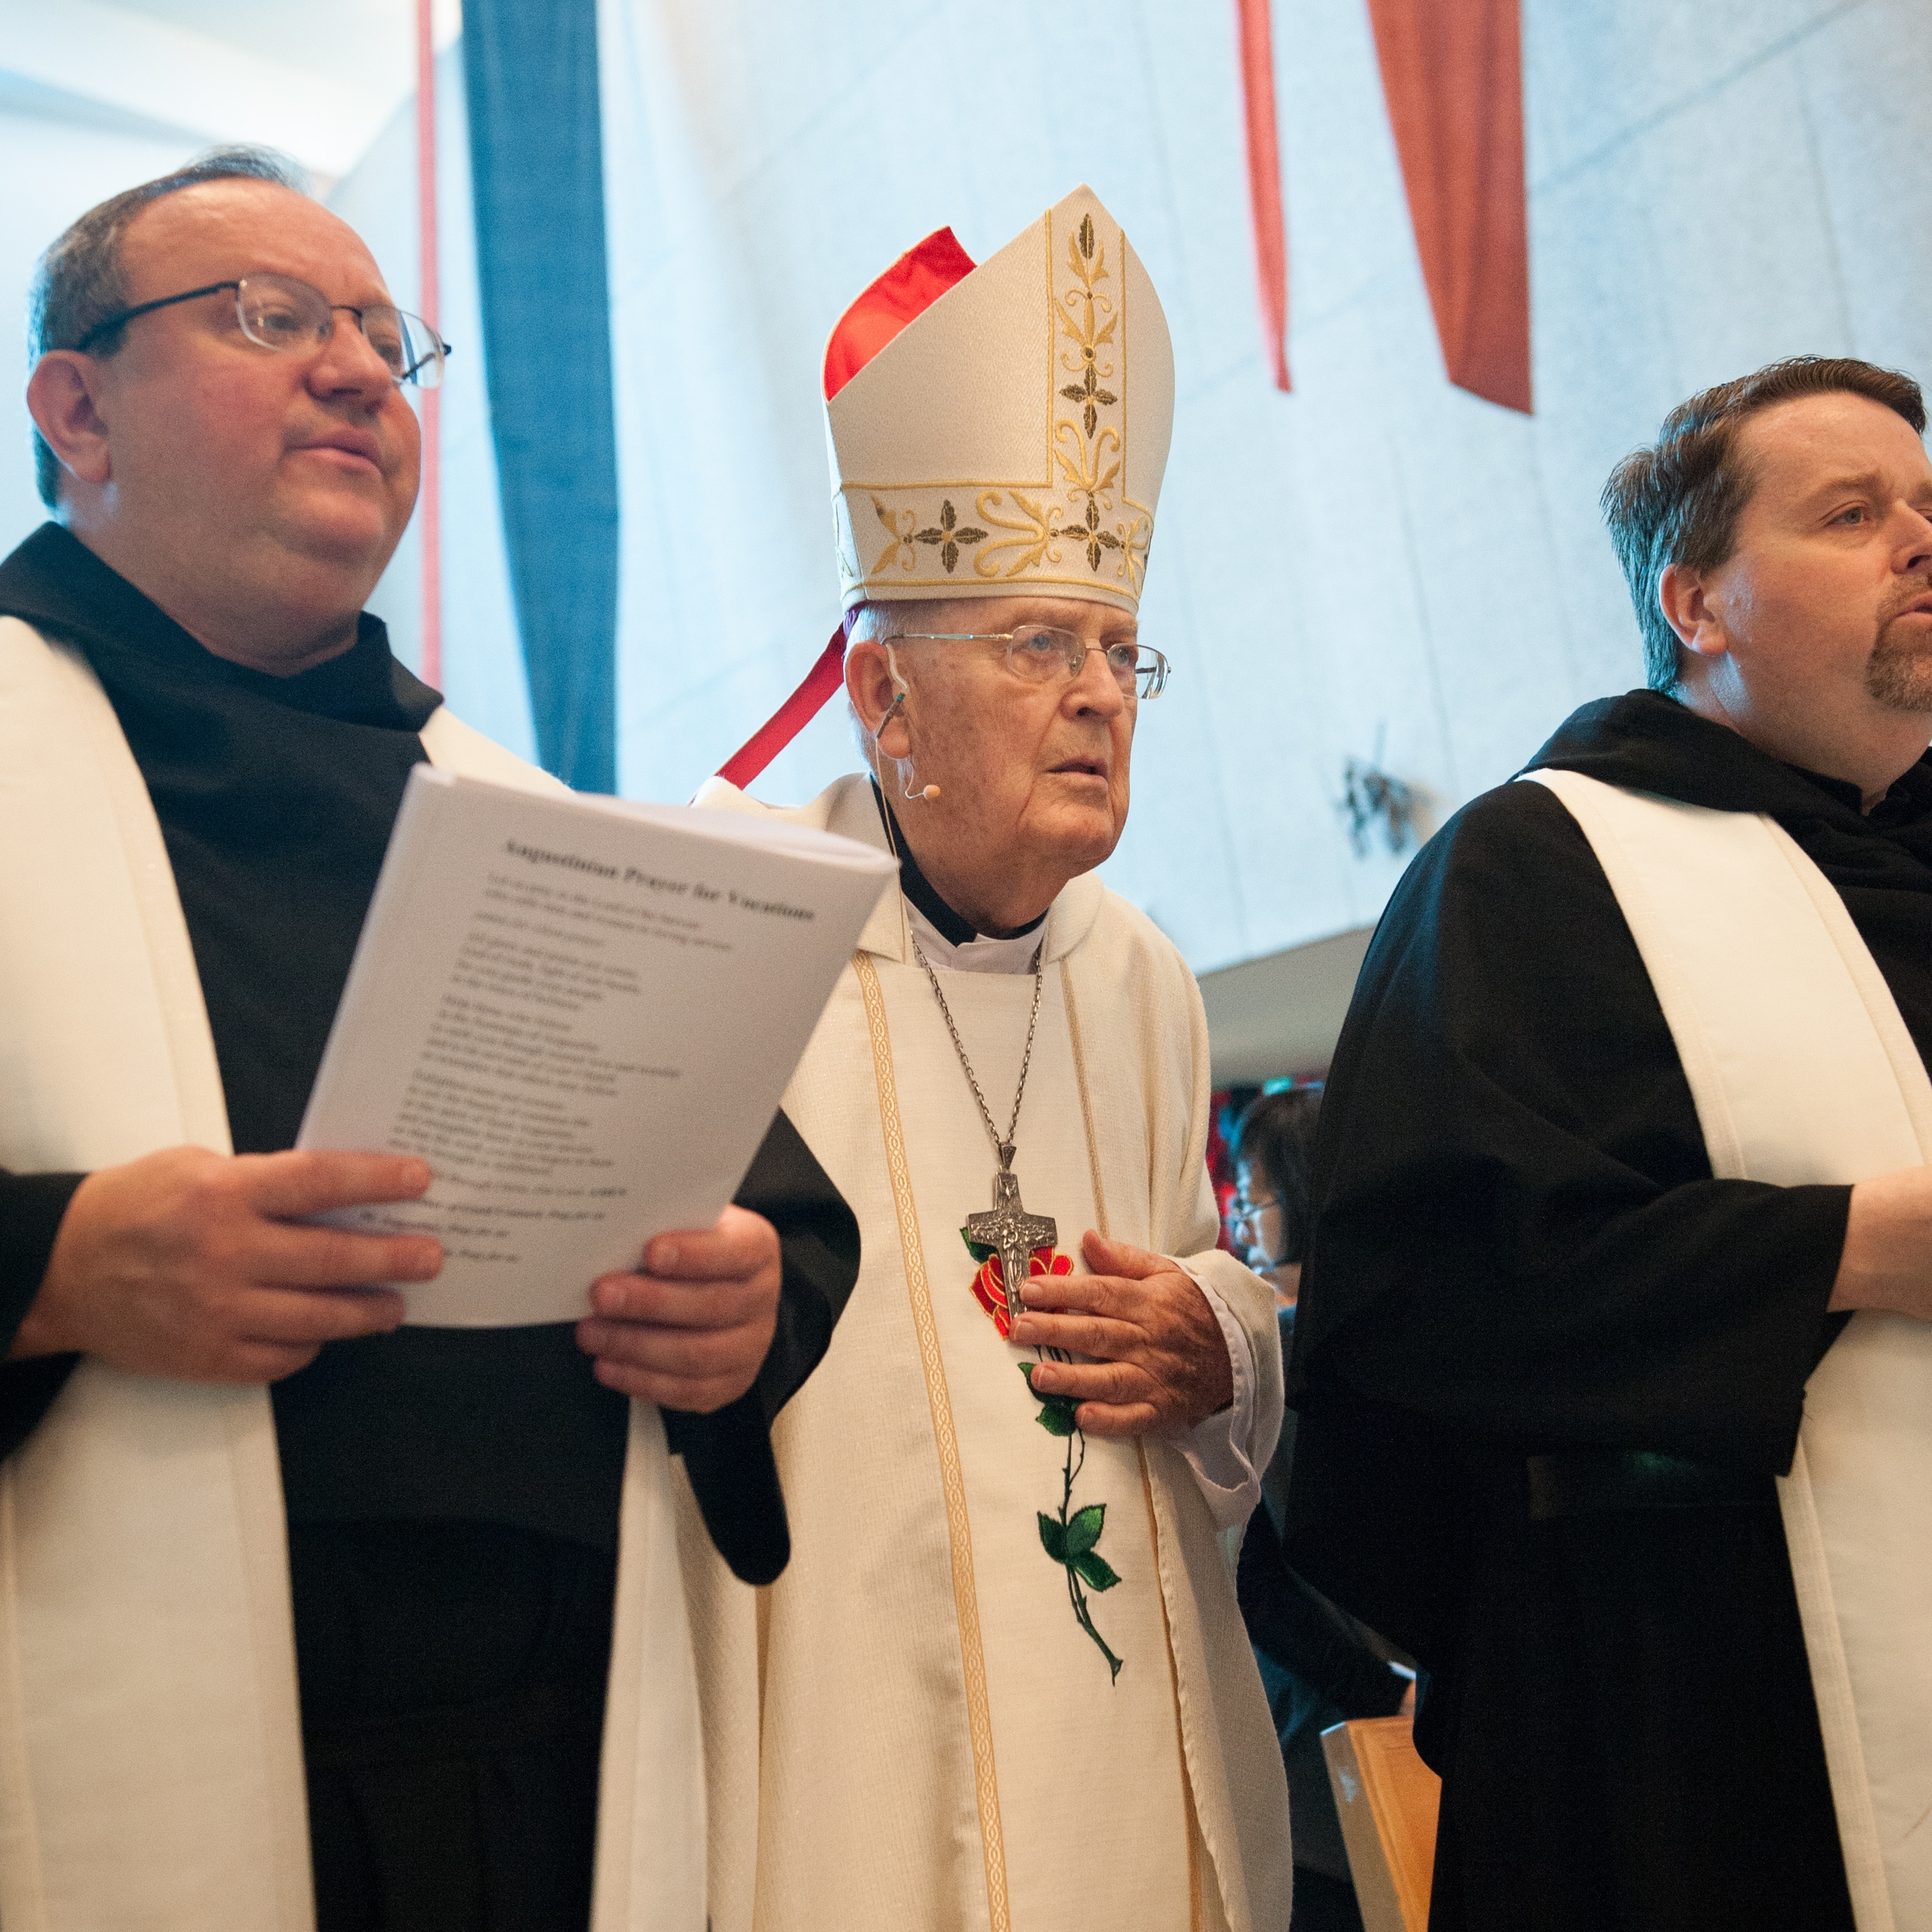 Bishop John McNabb, O.S.A. (center); with Fathers Bernie Scianna, O.S.A. (left); and Tom McCarthy, O.S.A. (right) at Saint Rita Shrine Chapel in 2014